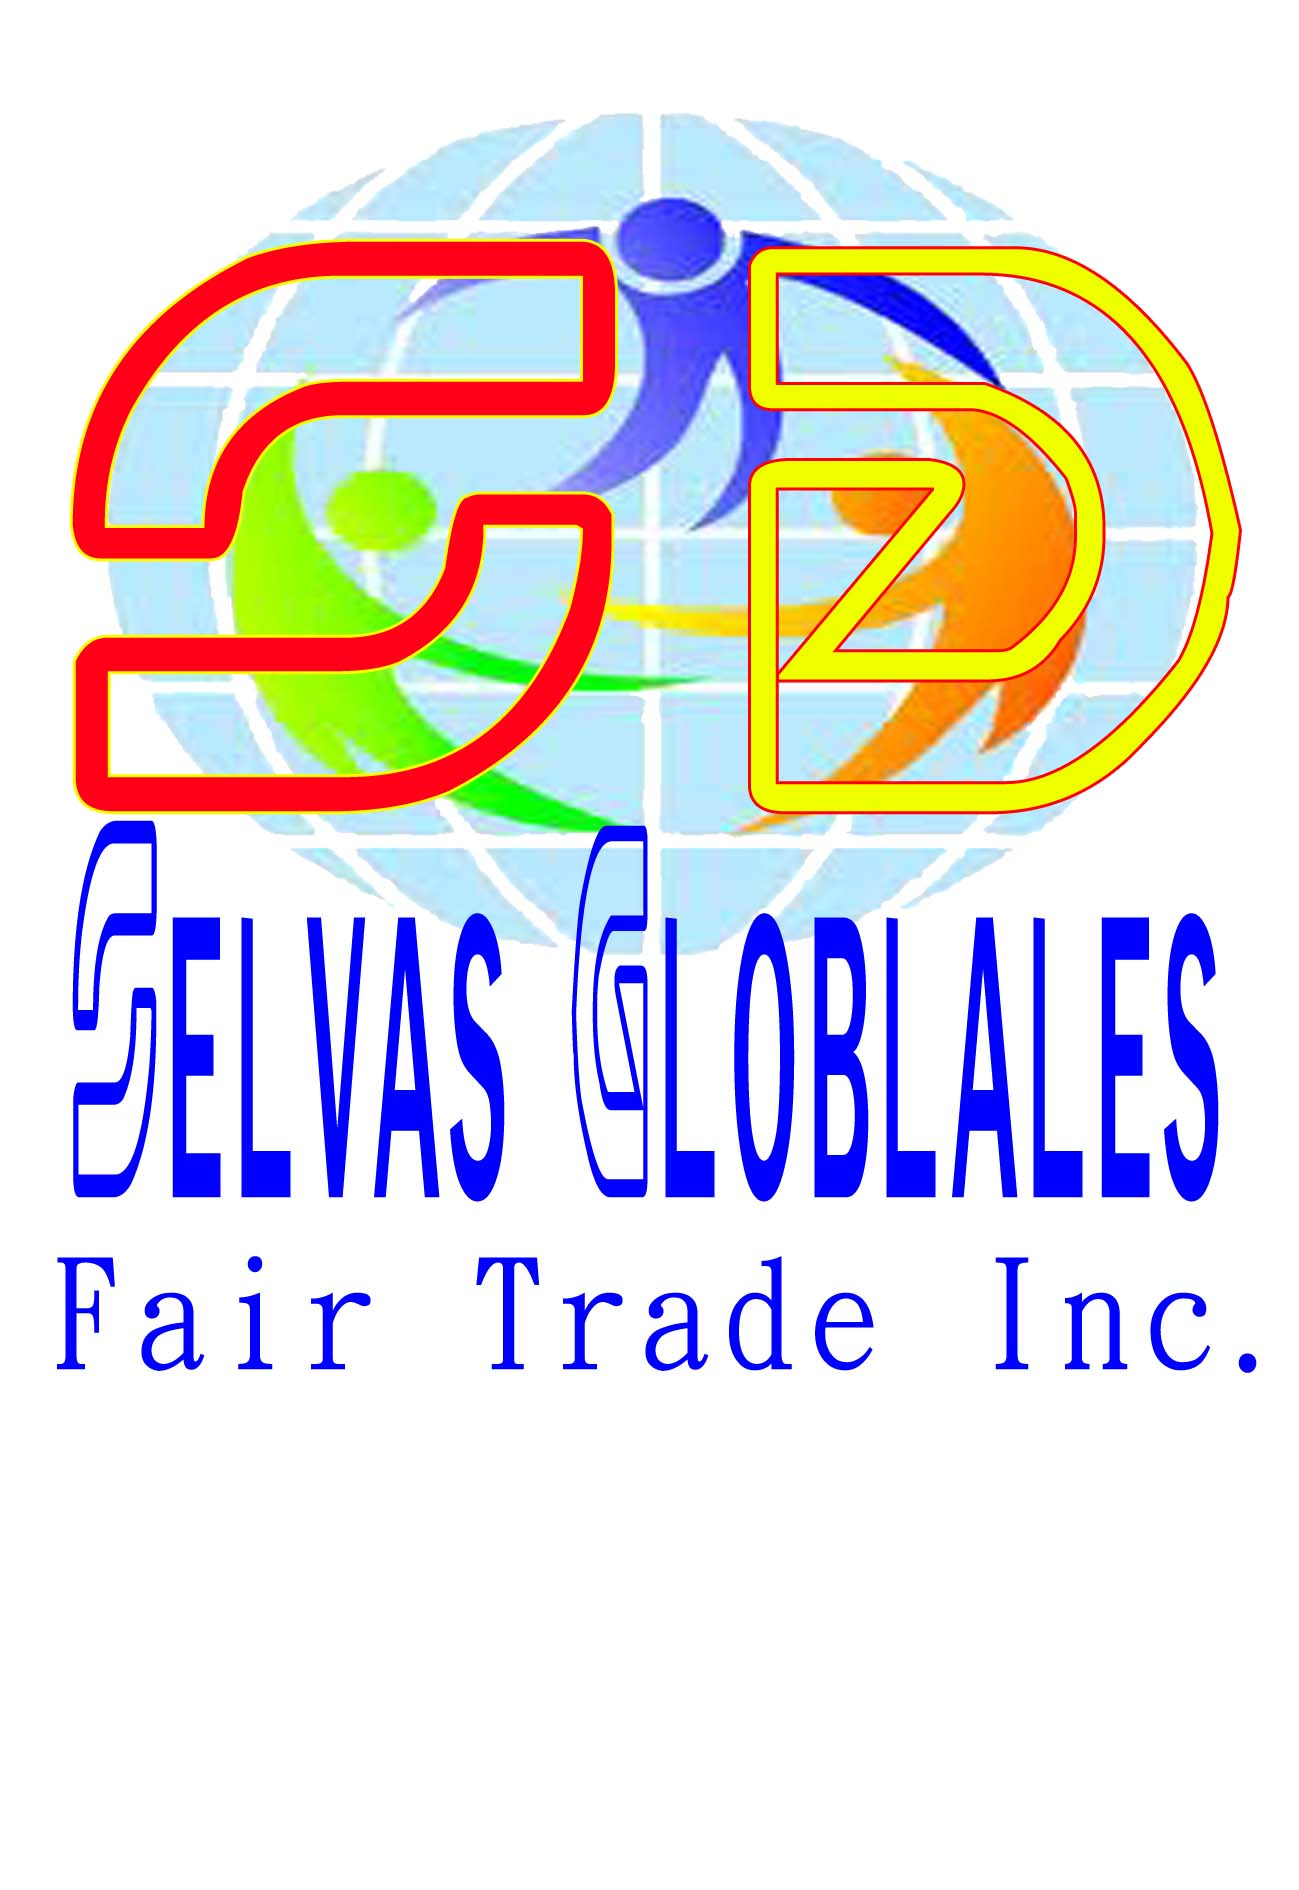 Logo Design by faza-bejo - Entry No. 47 in the Logo Design Contest Captivating Logo Design for Selvas Globales Fair Trade Inc..